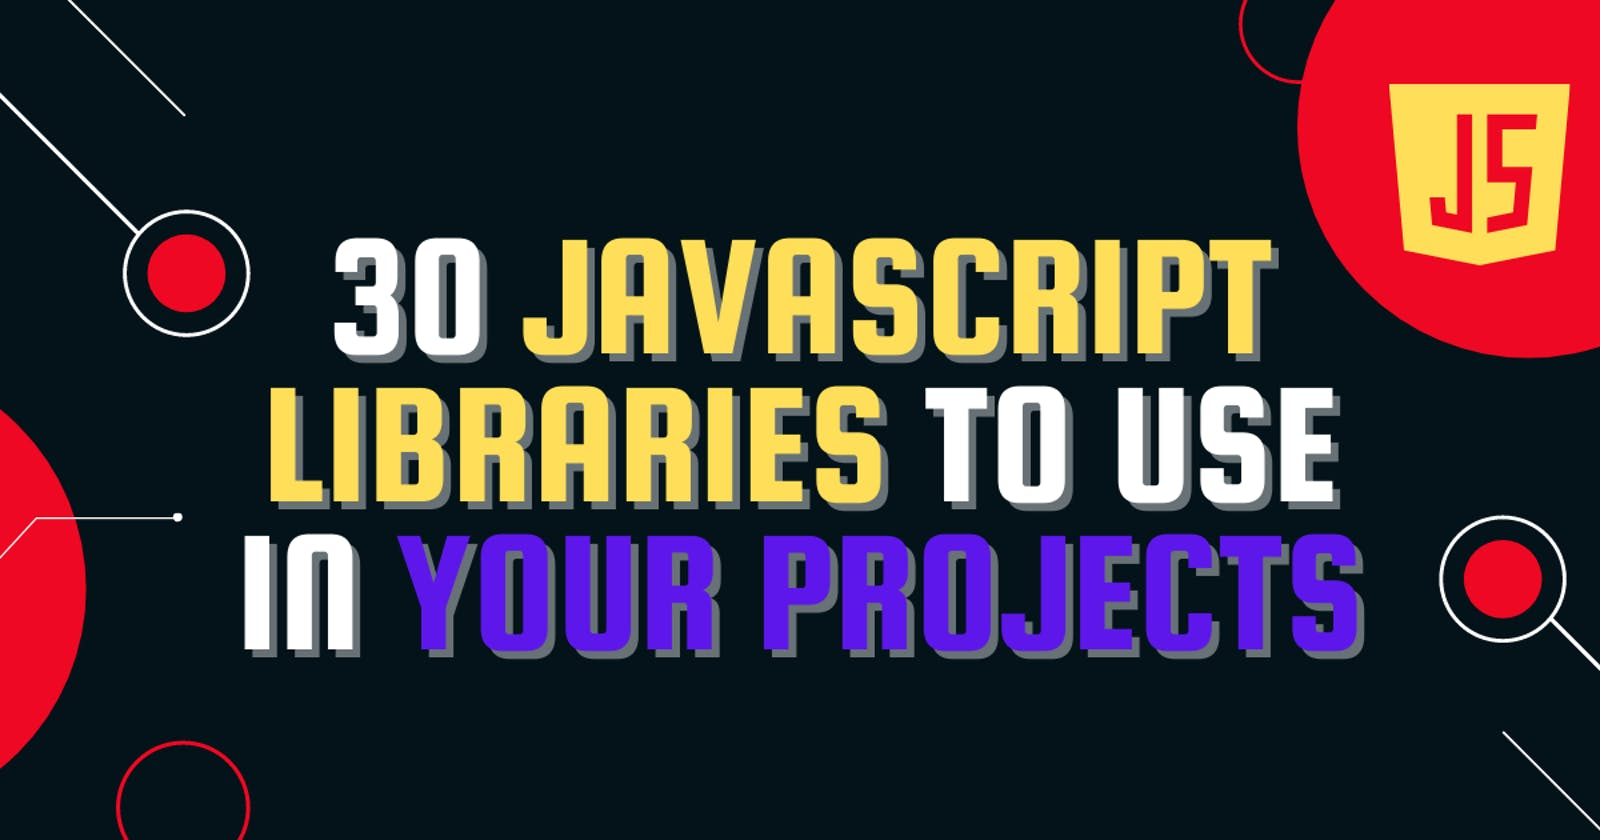 30 JavaScript Libraries to use in your Projects